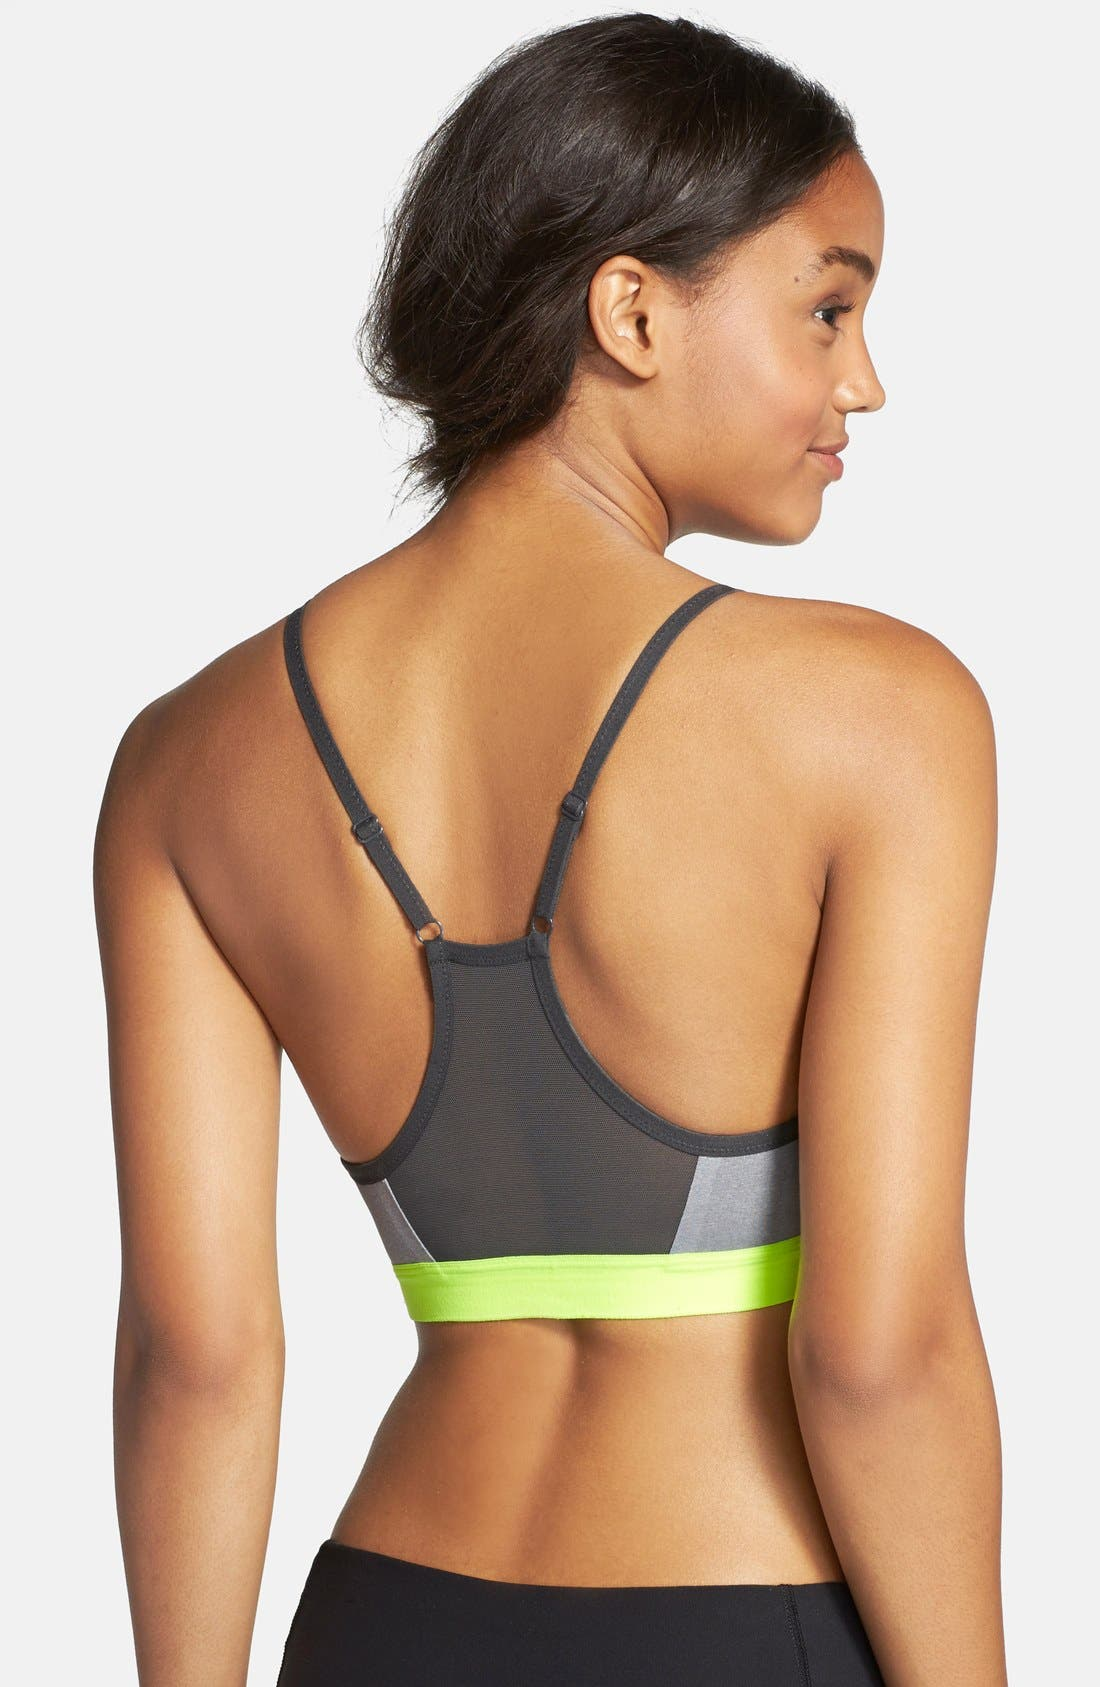 'Pro Indy' Dri-FIT Sports Bra,                             Alternate thumbnail 8, color,                             064